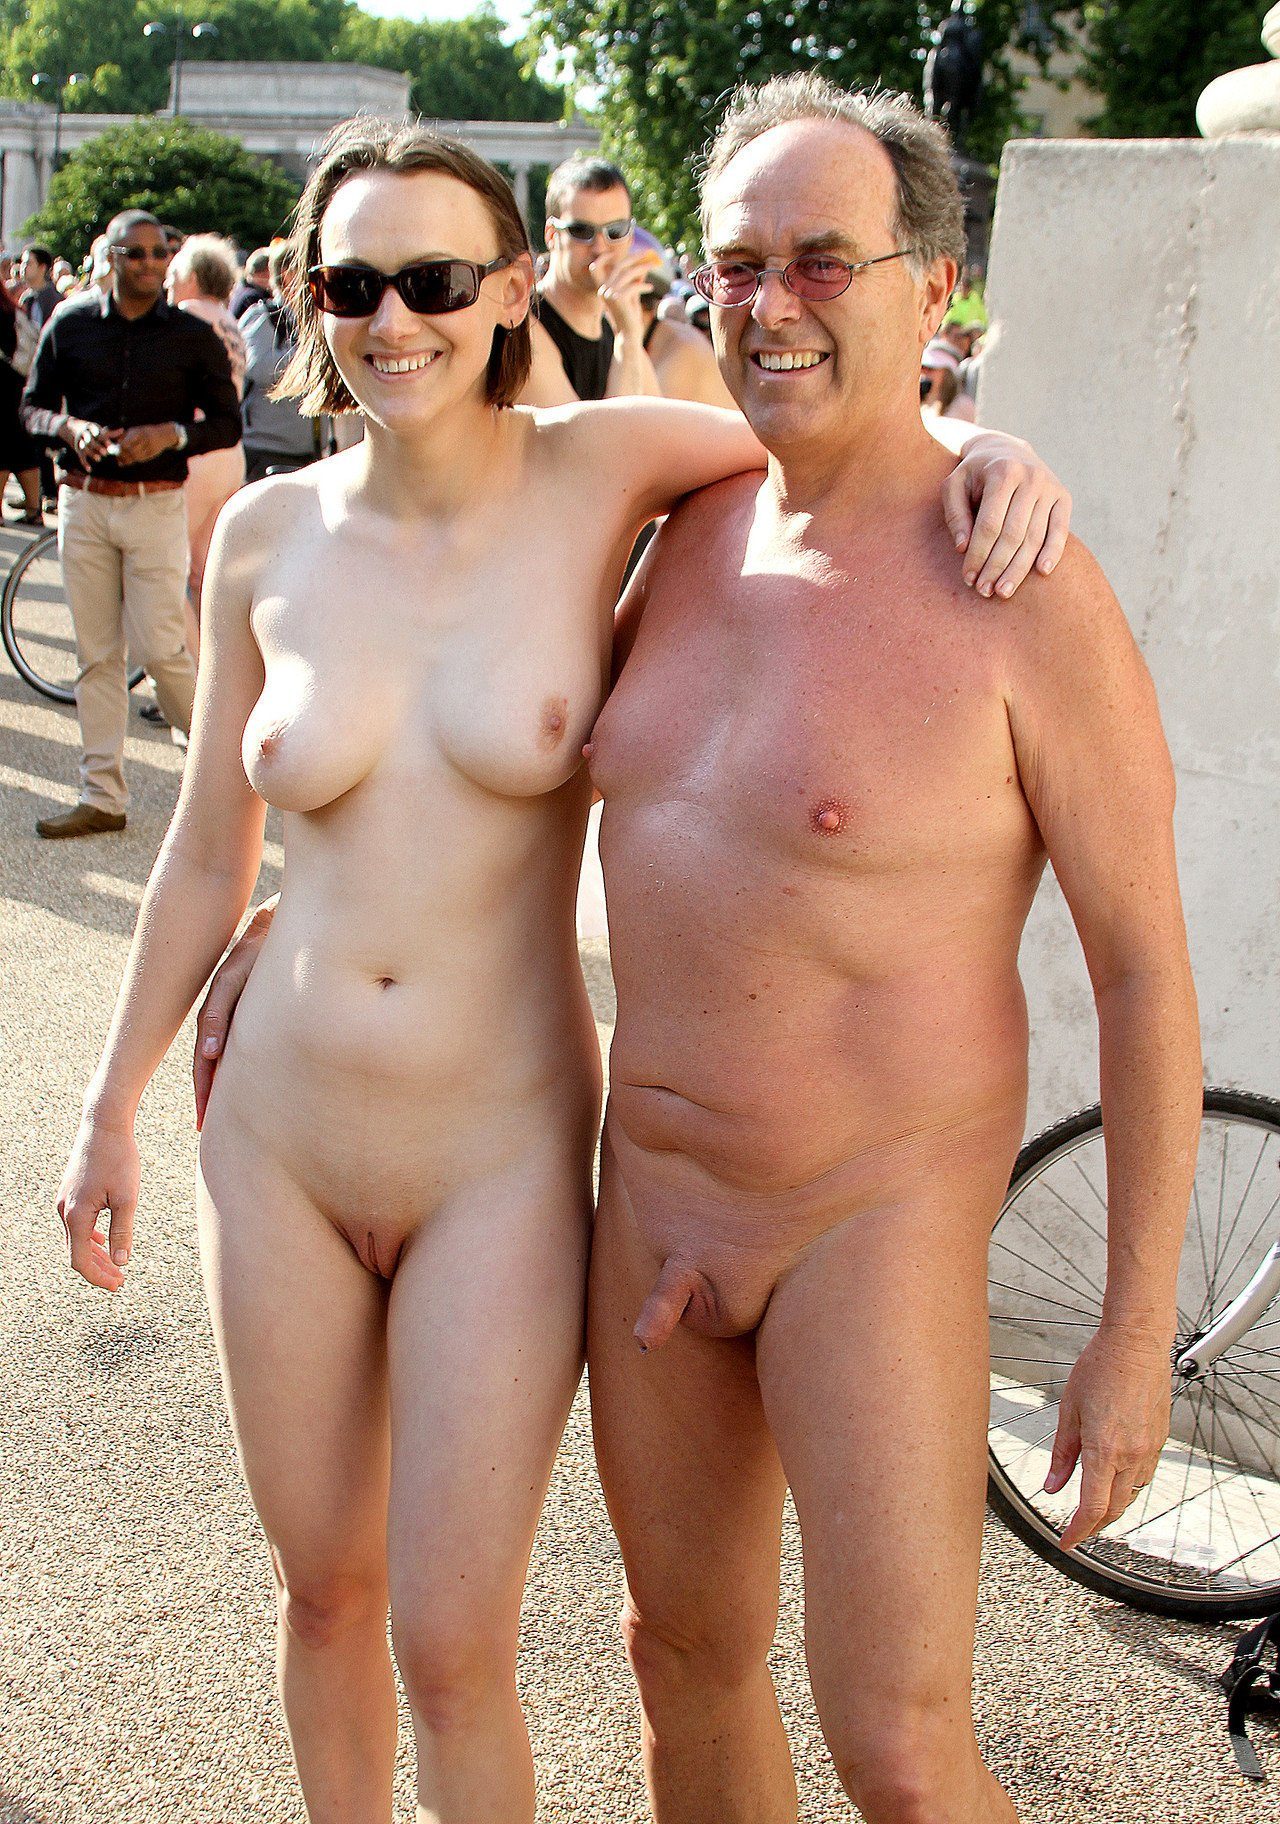 Nudist swingers and naturalist — 4